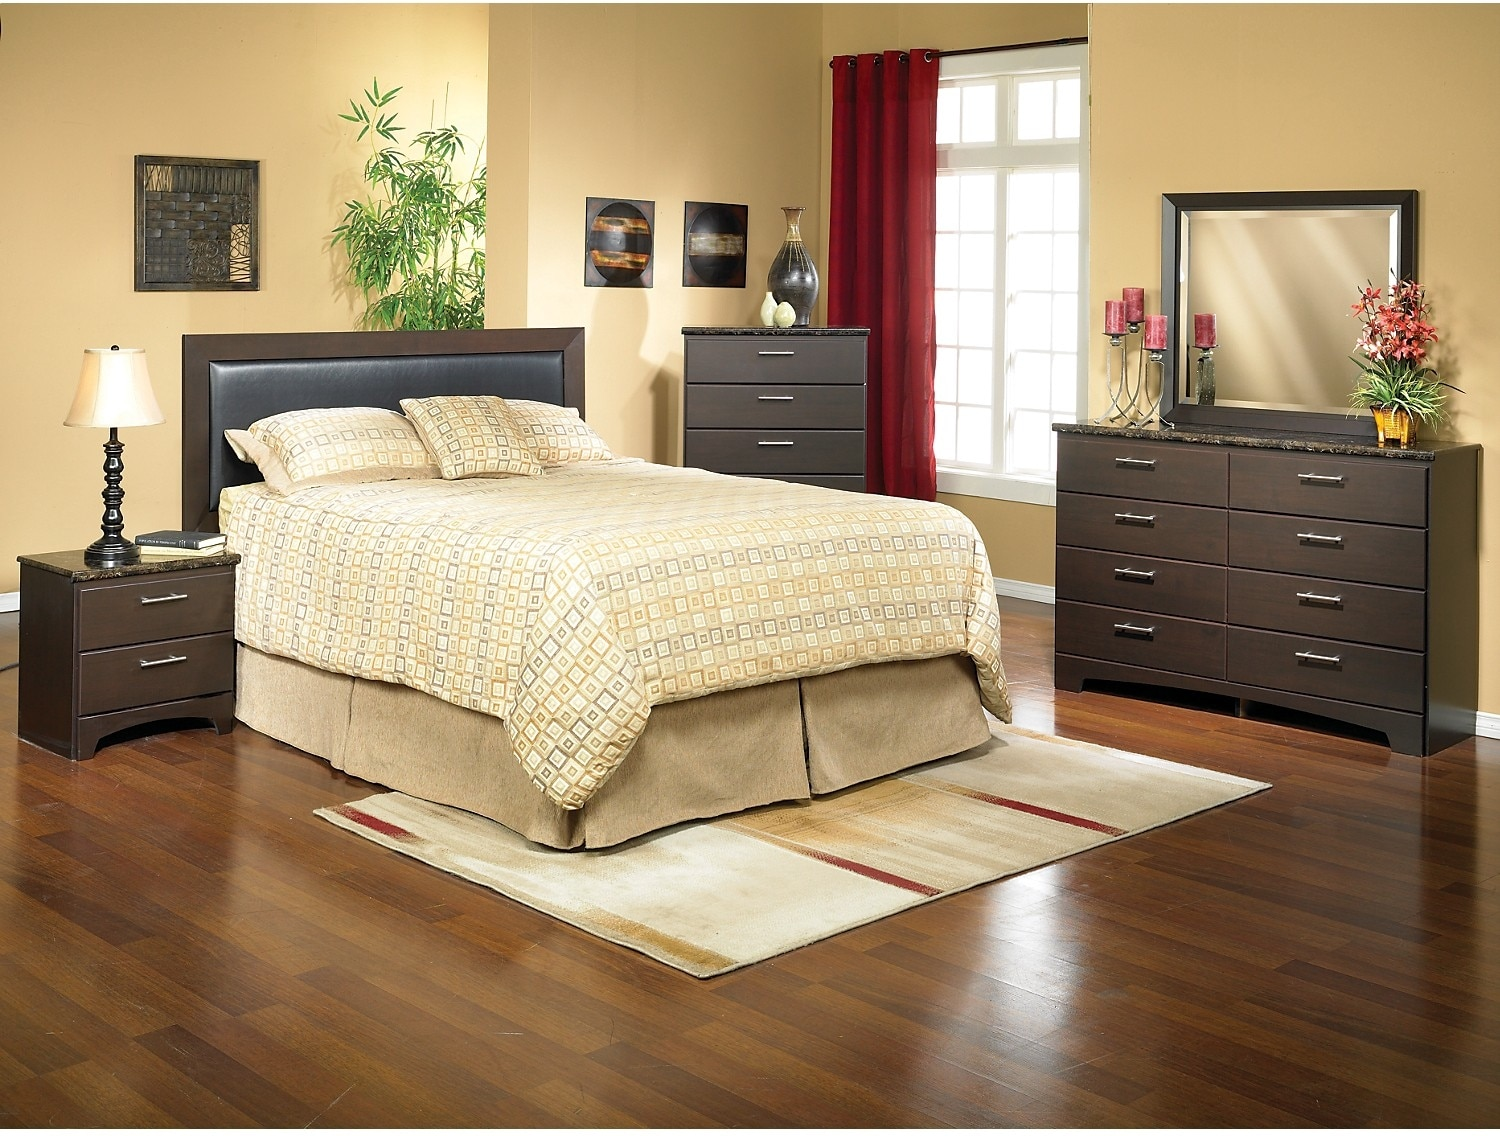 Oxford 5 Piece Queen Bedroom Package The Brick